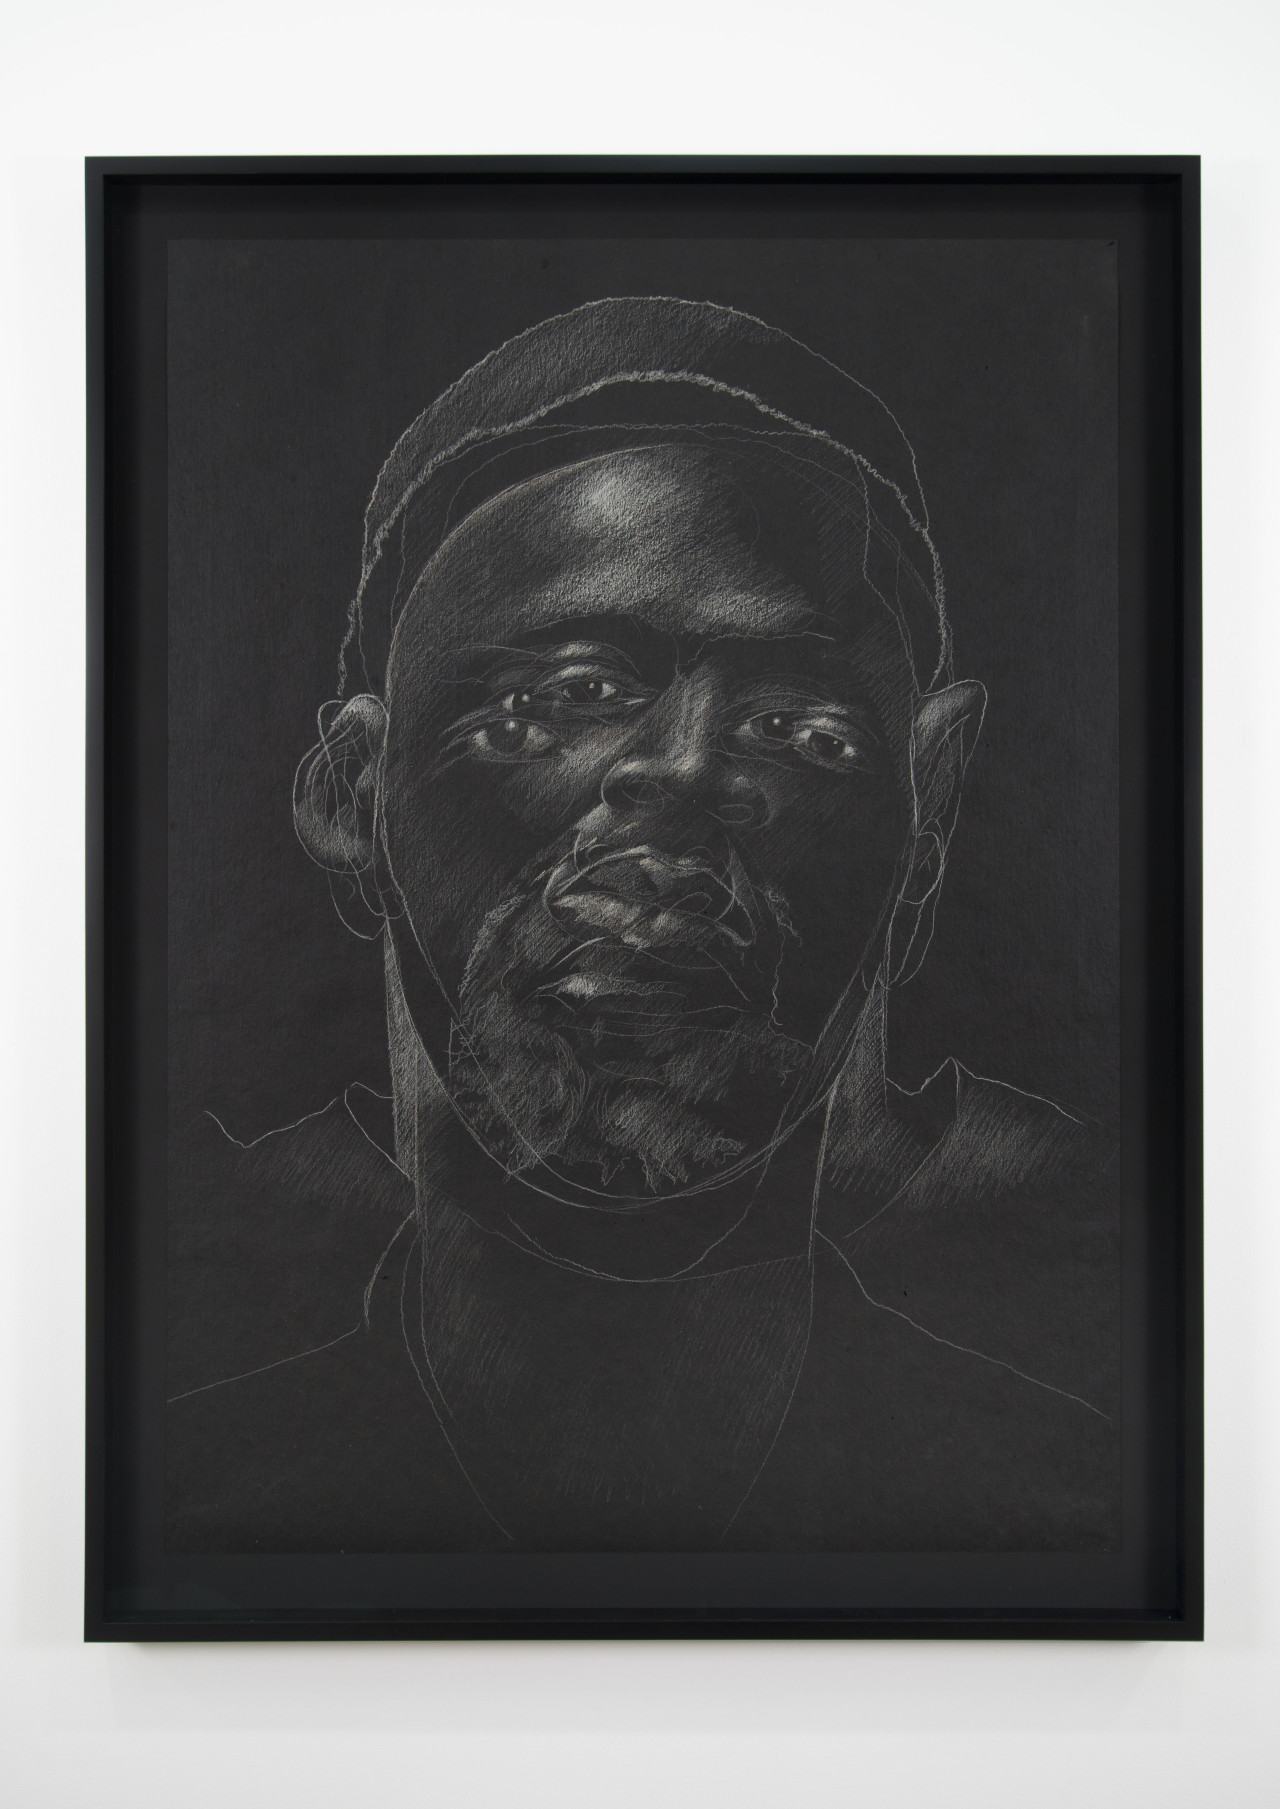 The Jerome Project (Asphalt and Chalk) III, 2014 Chalk on asphalt paper  49 x 35 1/2 inches (drawing)  ©Titus Kaphar.  Courtesy of the artist and Jack Shainman Gallery, New York.